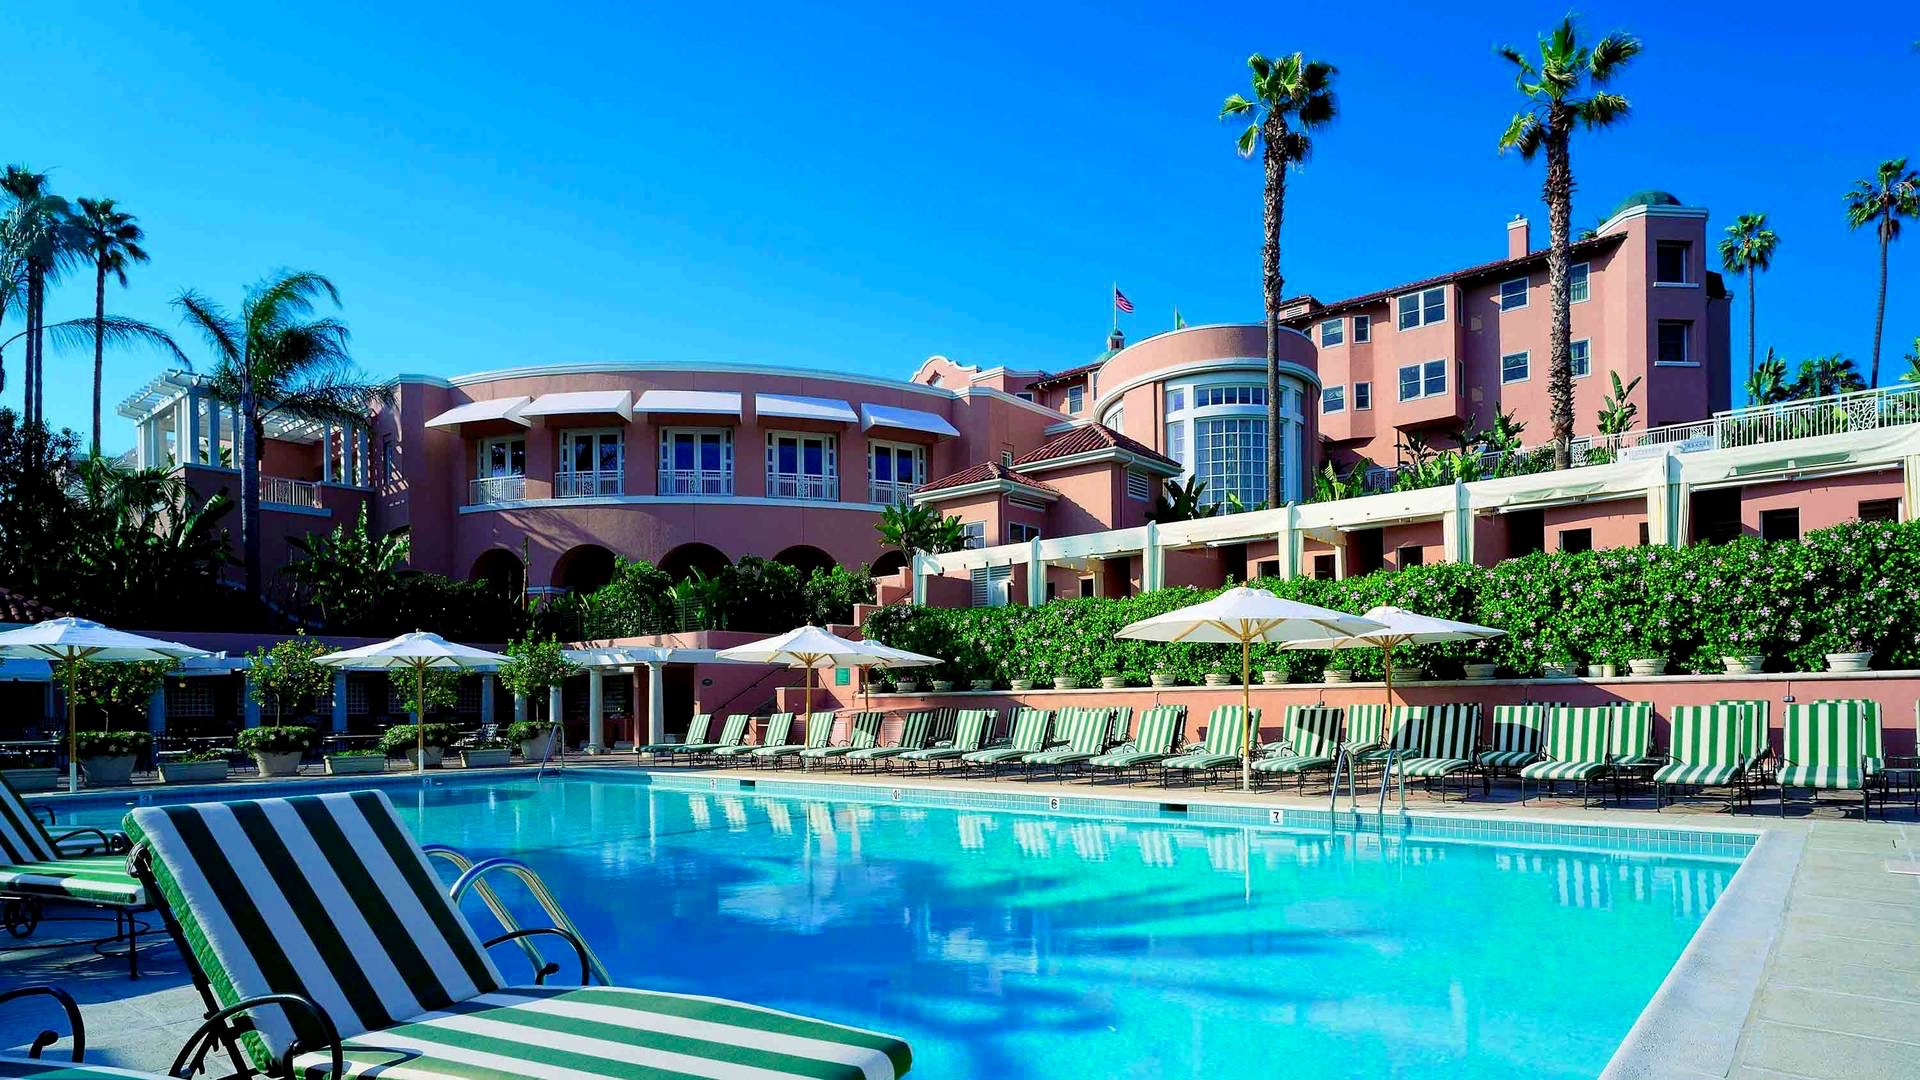 The beverly hills hotel spa by la prairie spas of america for Most luxurious hotel in los angeles